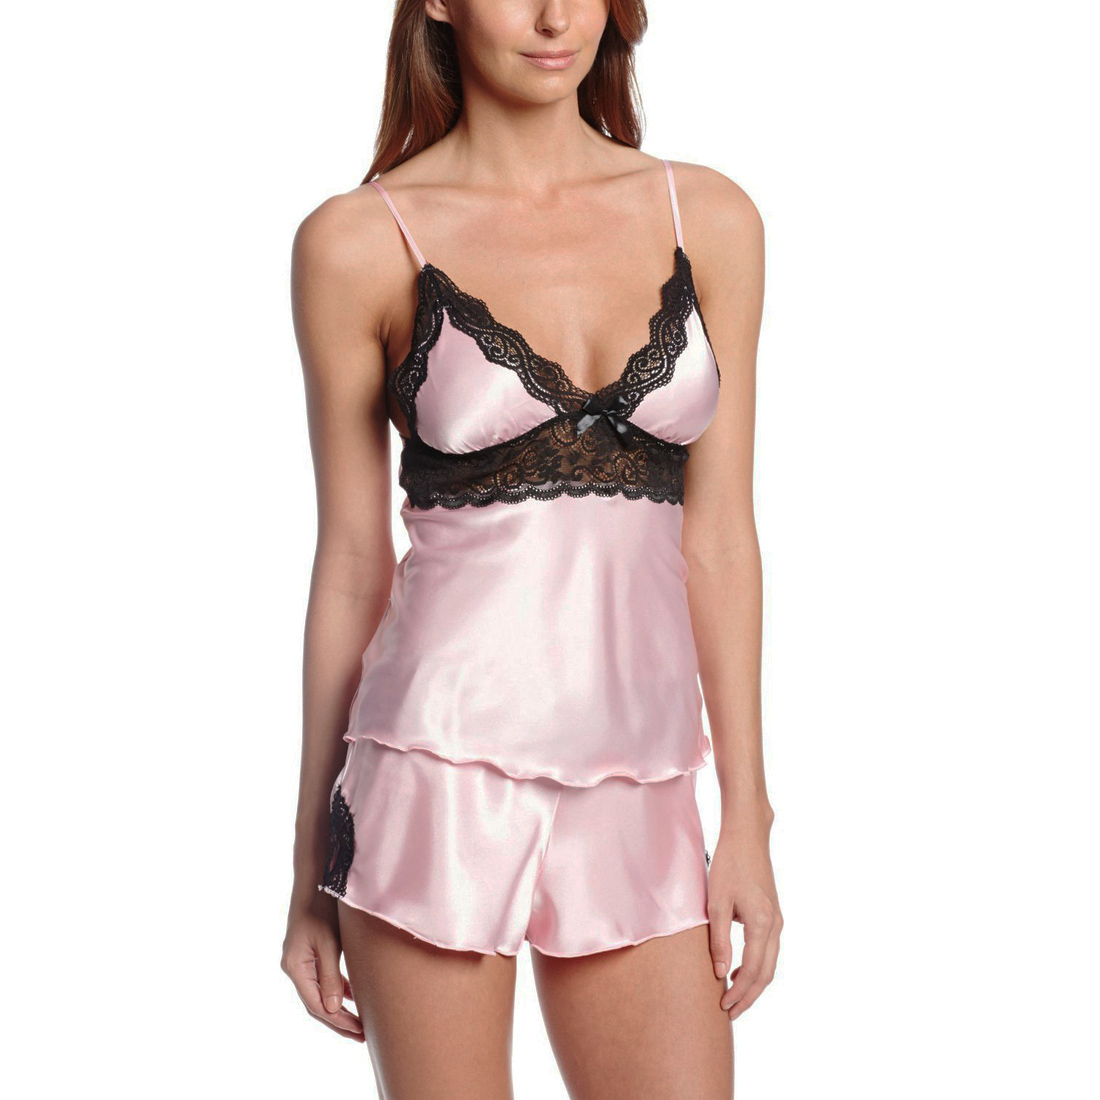 We have a large assortment of women's camisoles available in many styles, colors, and fabric choices. Some camisoles are available alone, and others may be available in a 2-piece set that includes shorts, boy shorts, thongs, or pants.